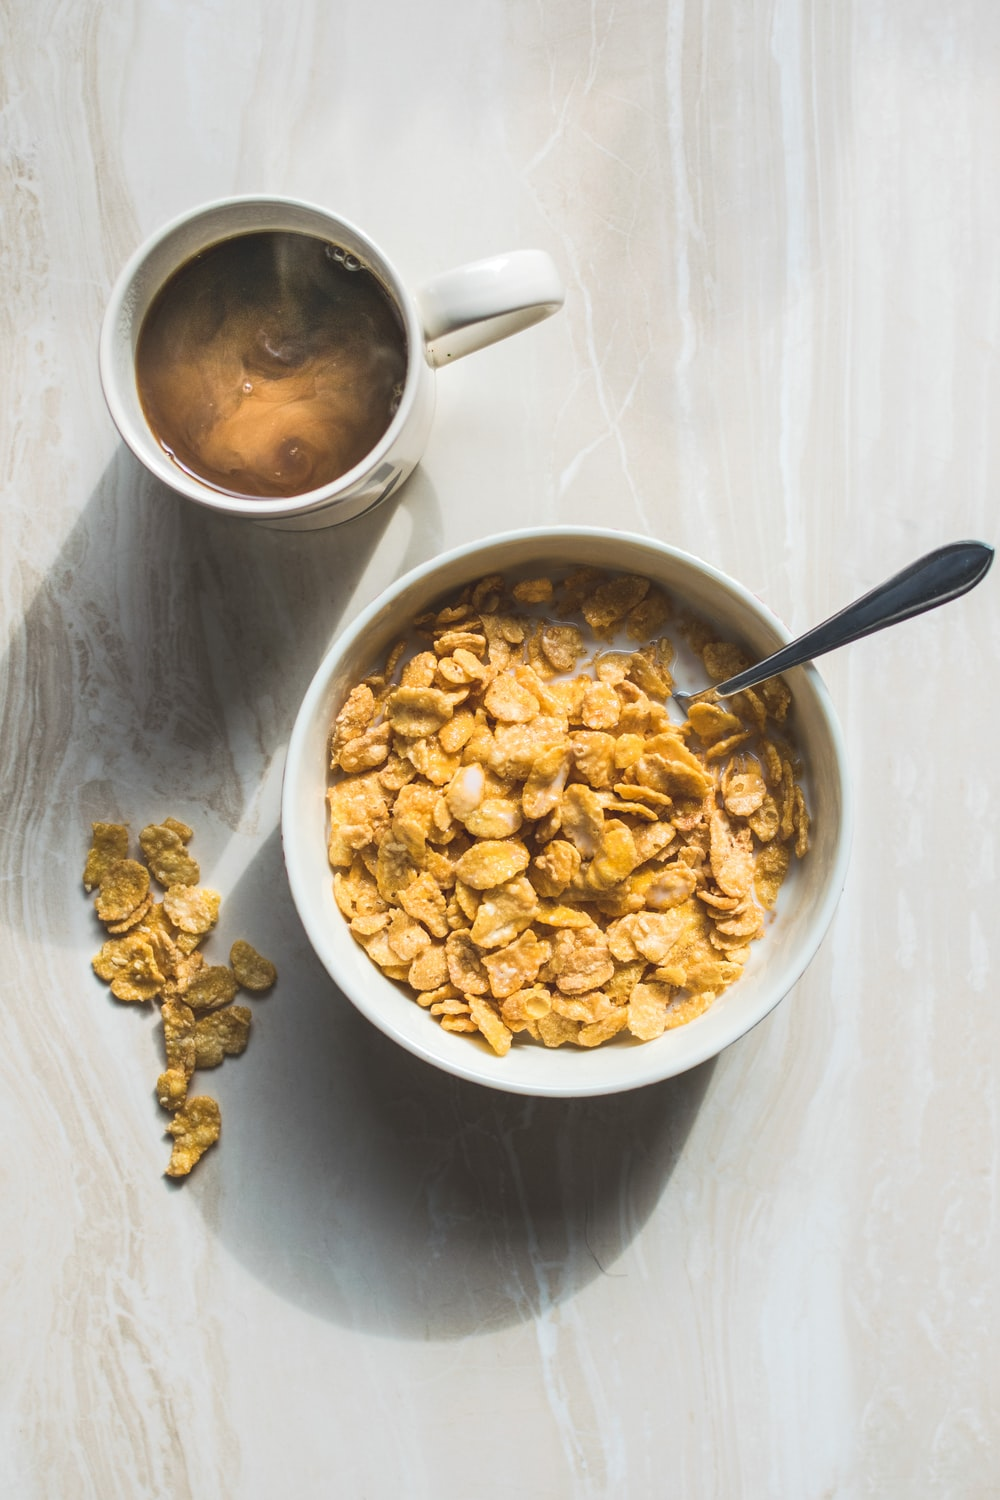 ceramic bowl filled with cereals and spoon